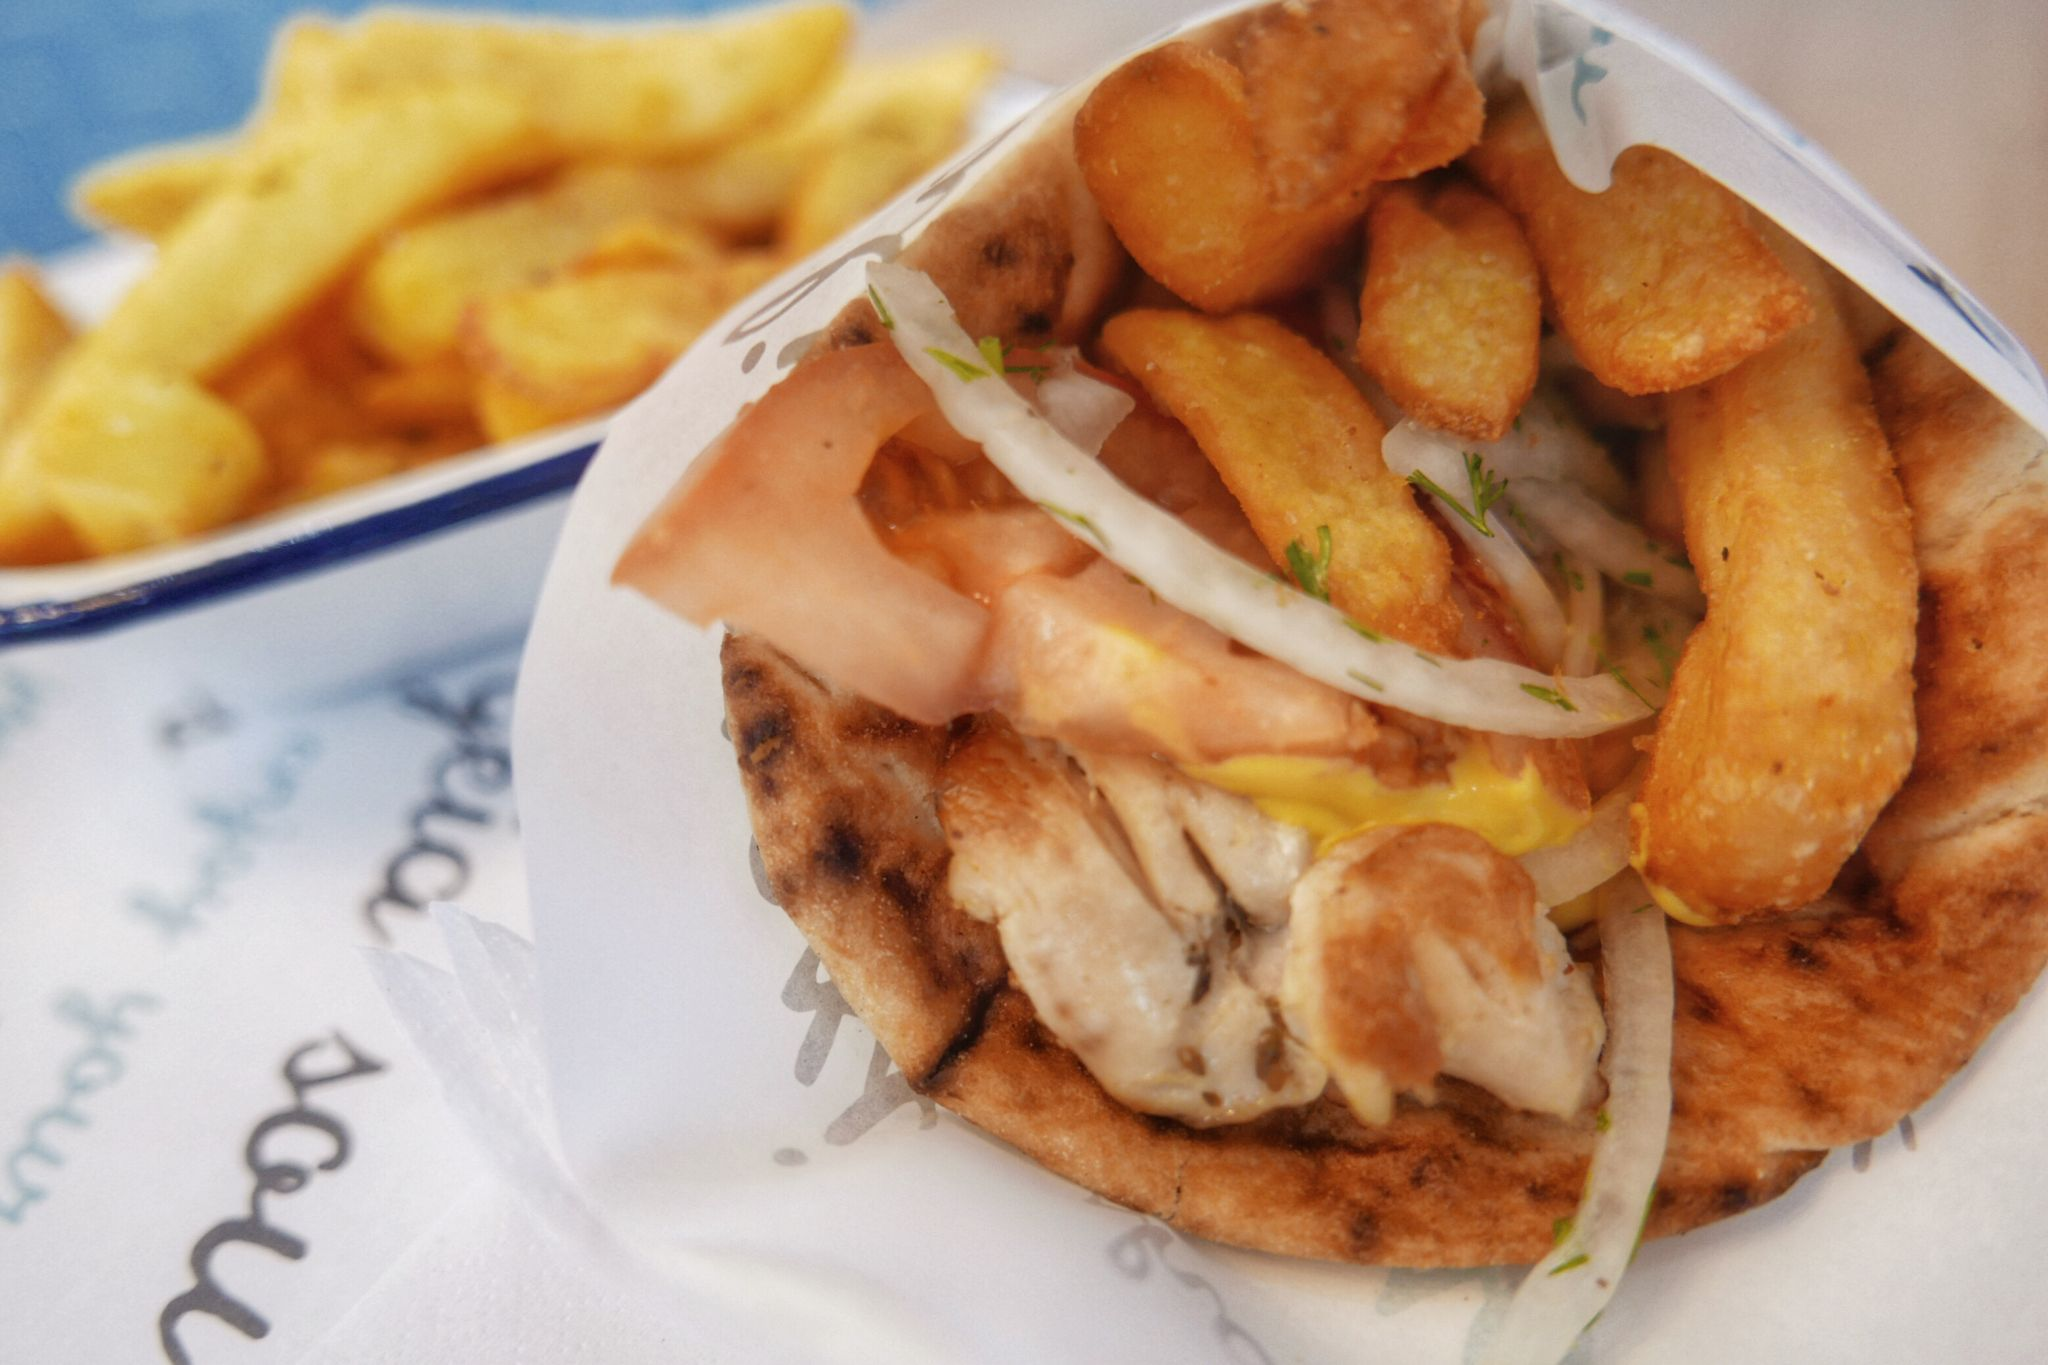 Classic Greek wrap with chicken souvlaki from All Greek Street Food Birmingham.Planning on eating out in Birmingham? A Brummie Home and Abroad decided to spend January trying out new breakfast, lunch and dinner spots